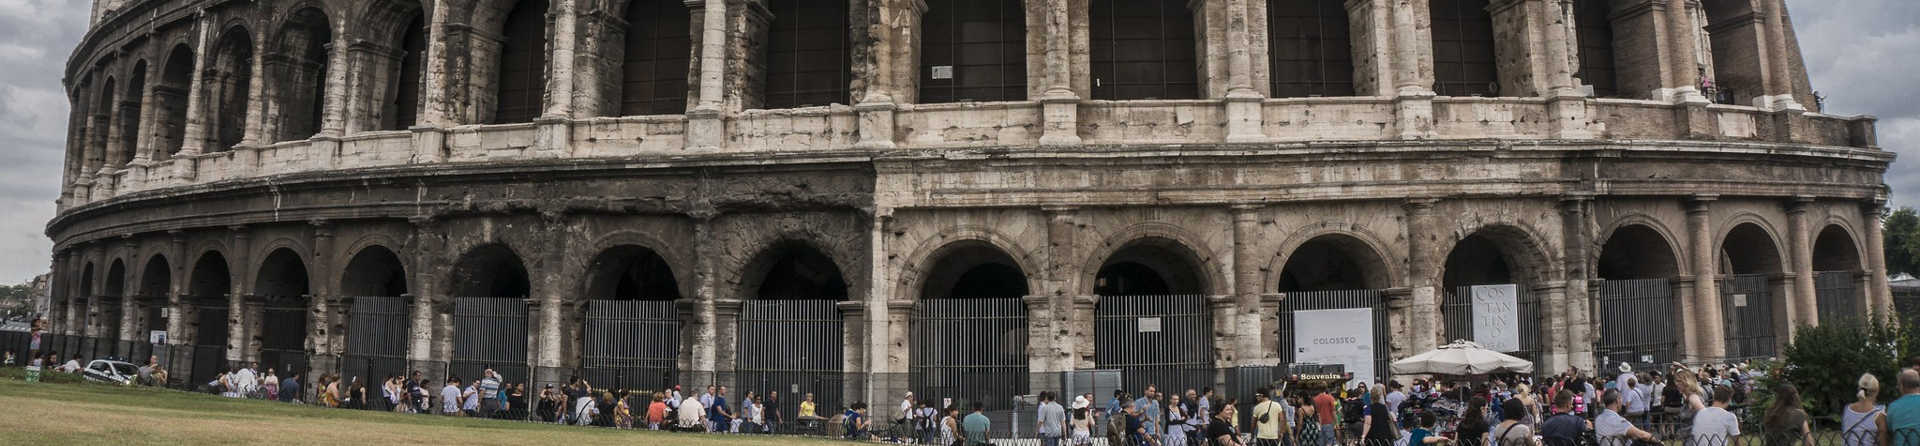 Is it worth going inside the Colosseum?